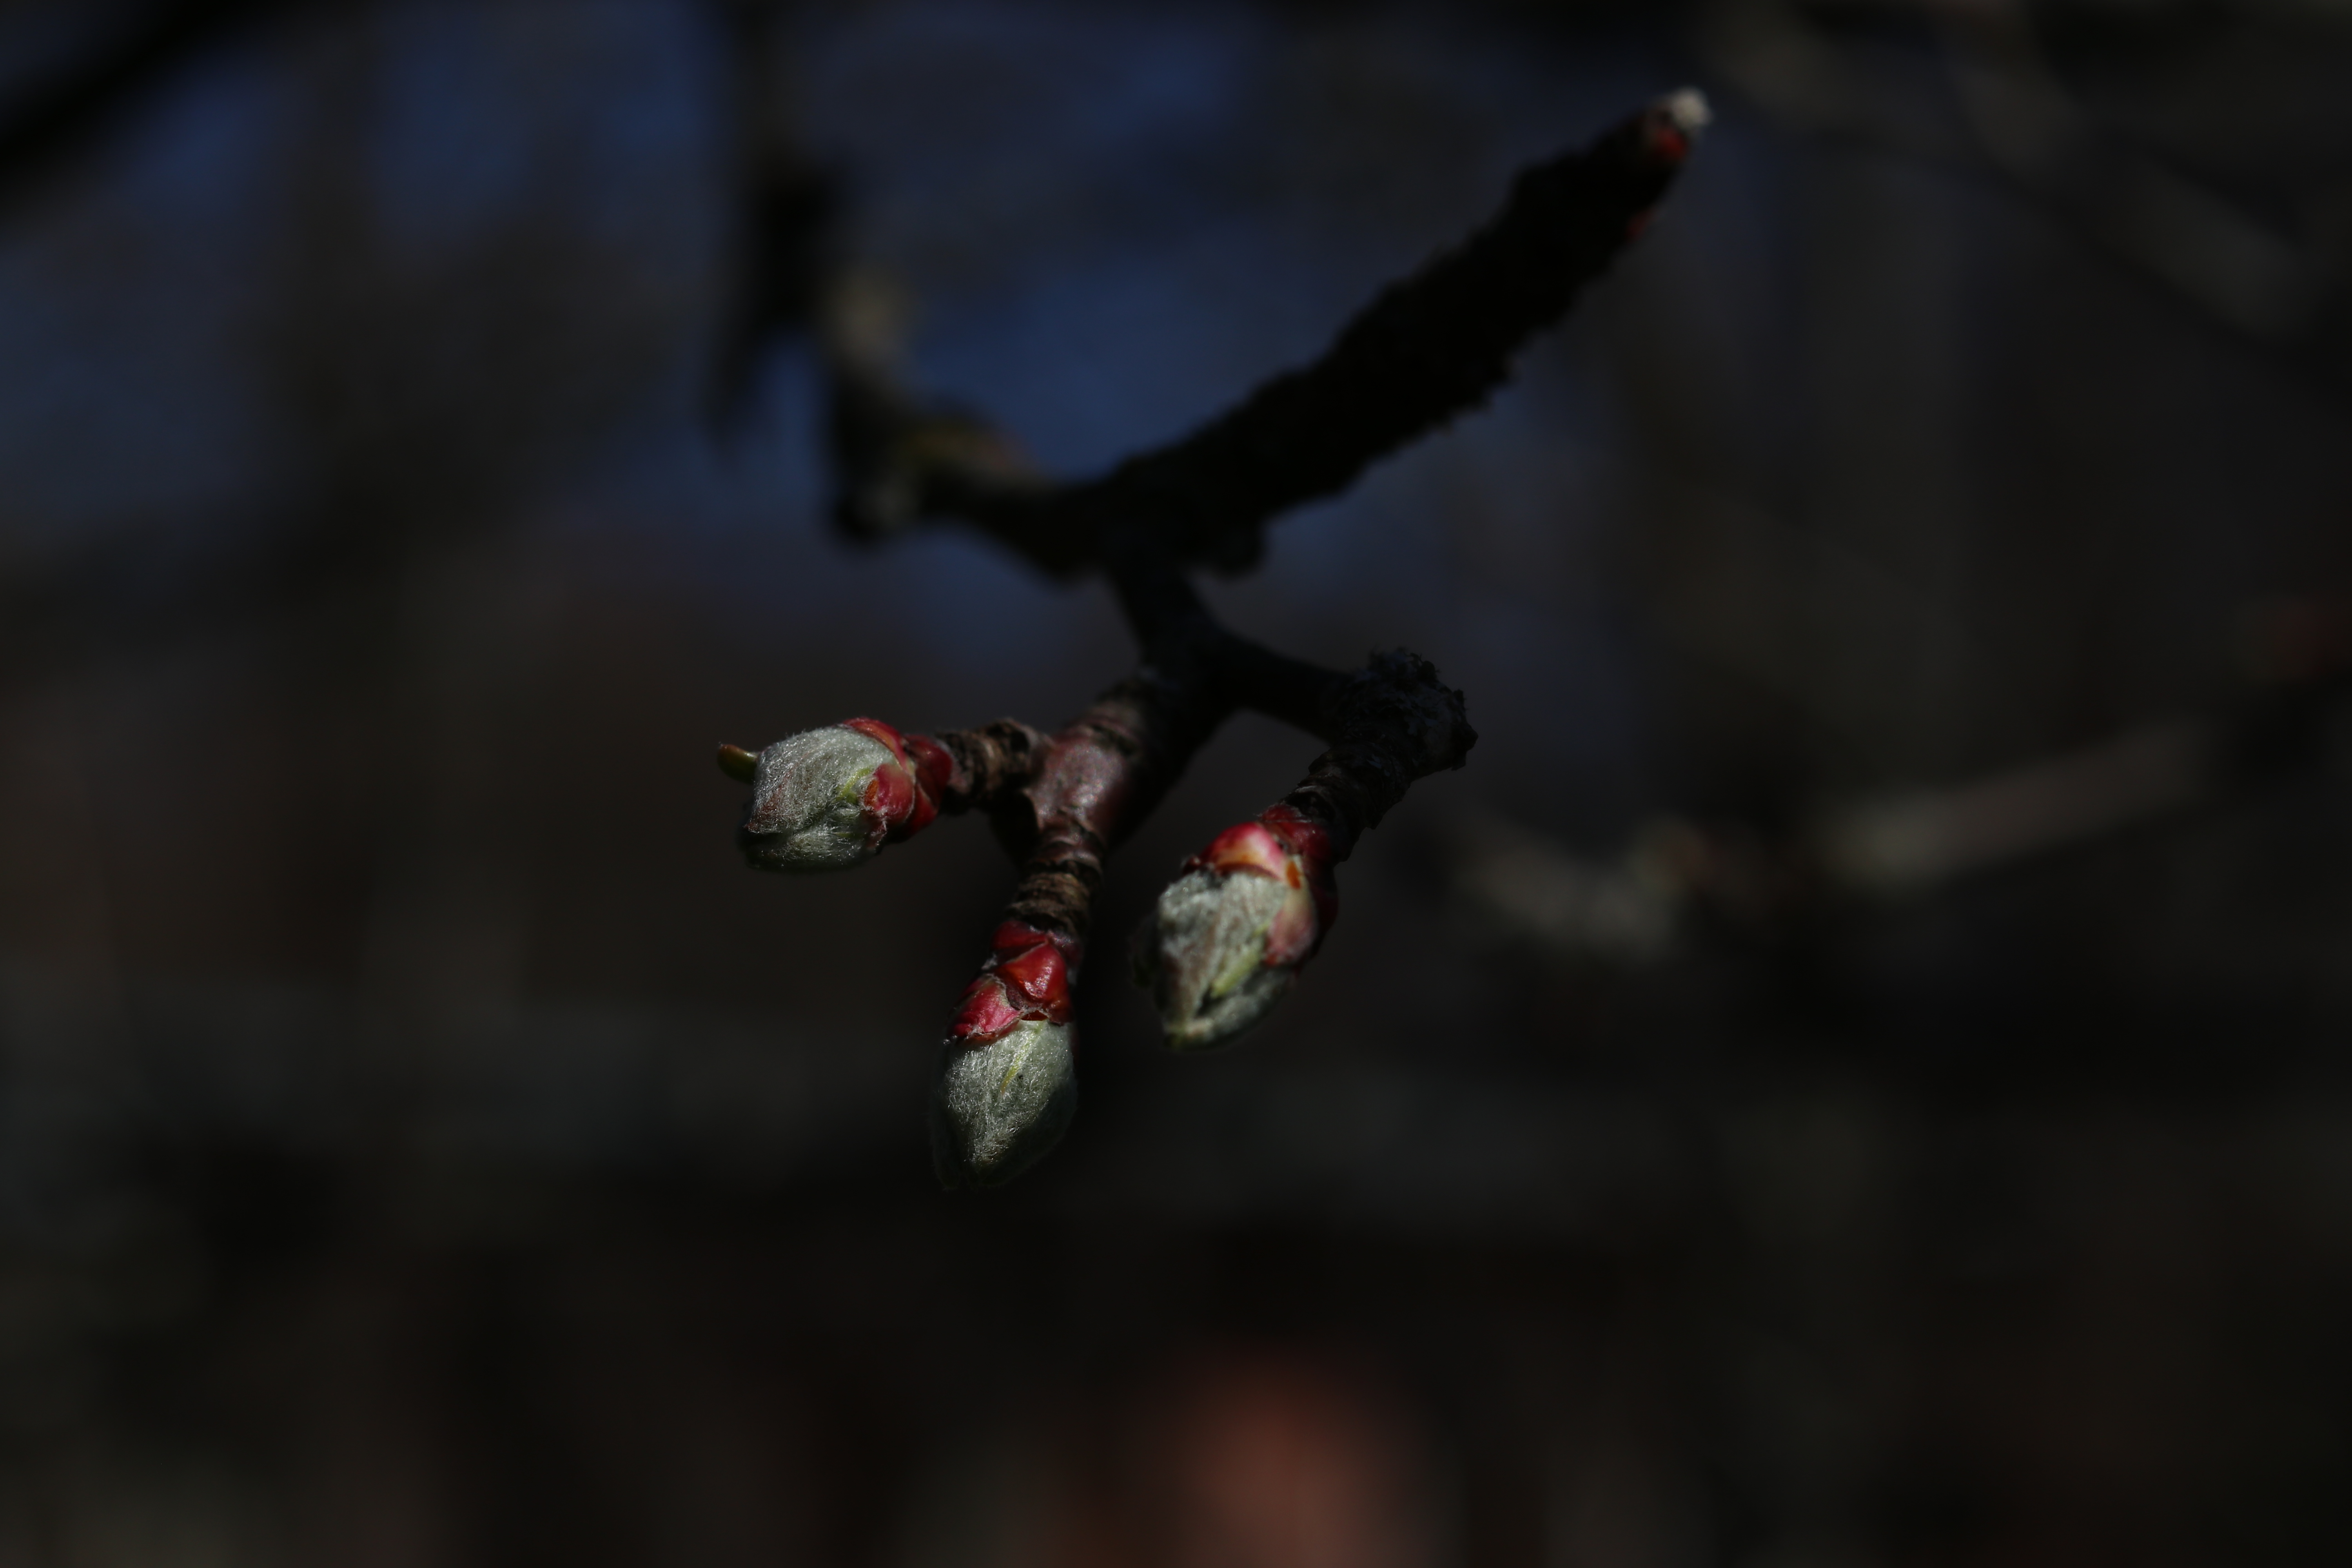 Bud on an apple tree branch shedding its armor